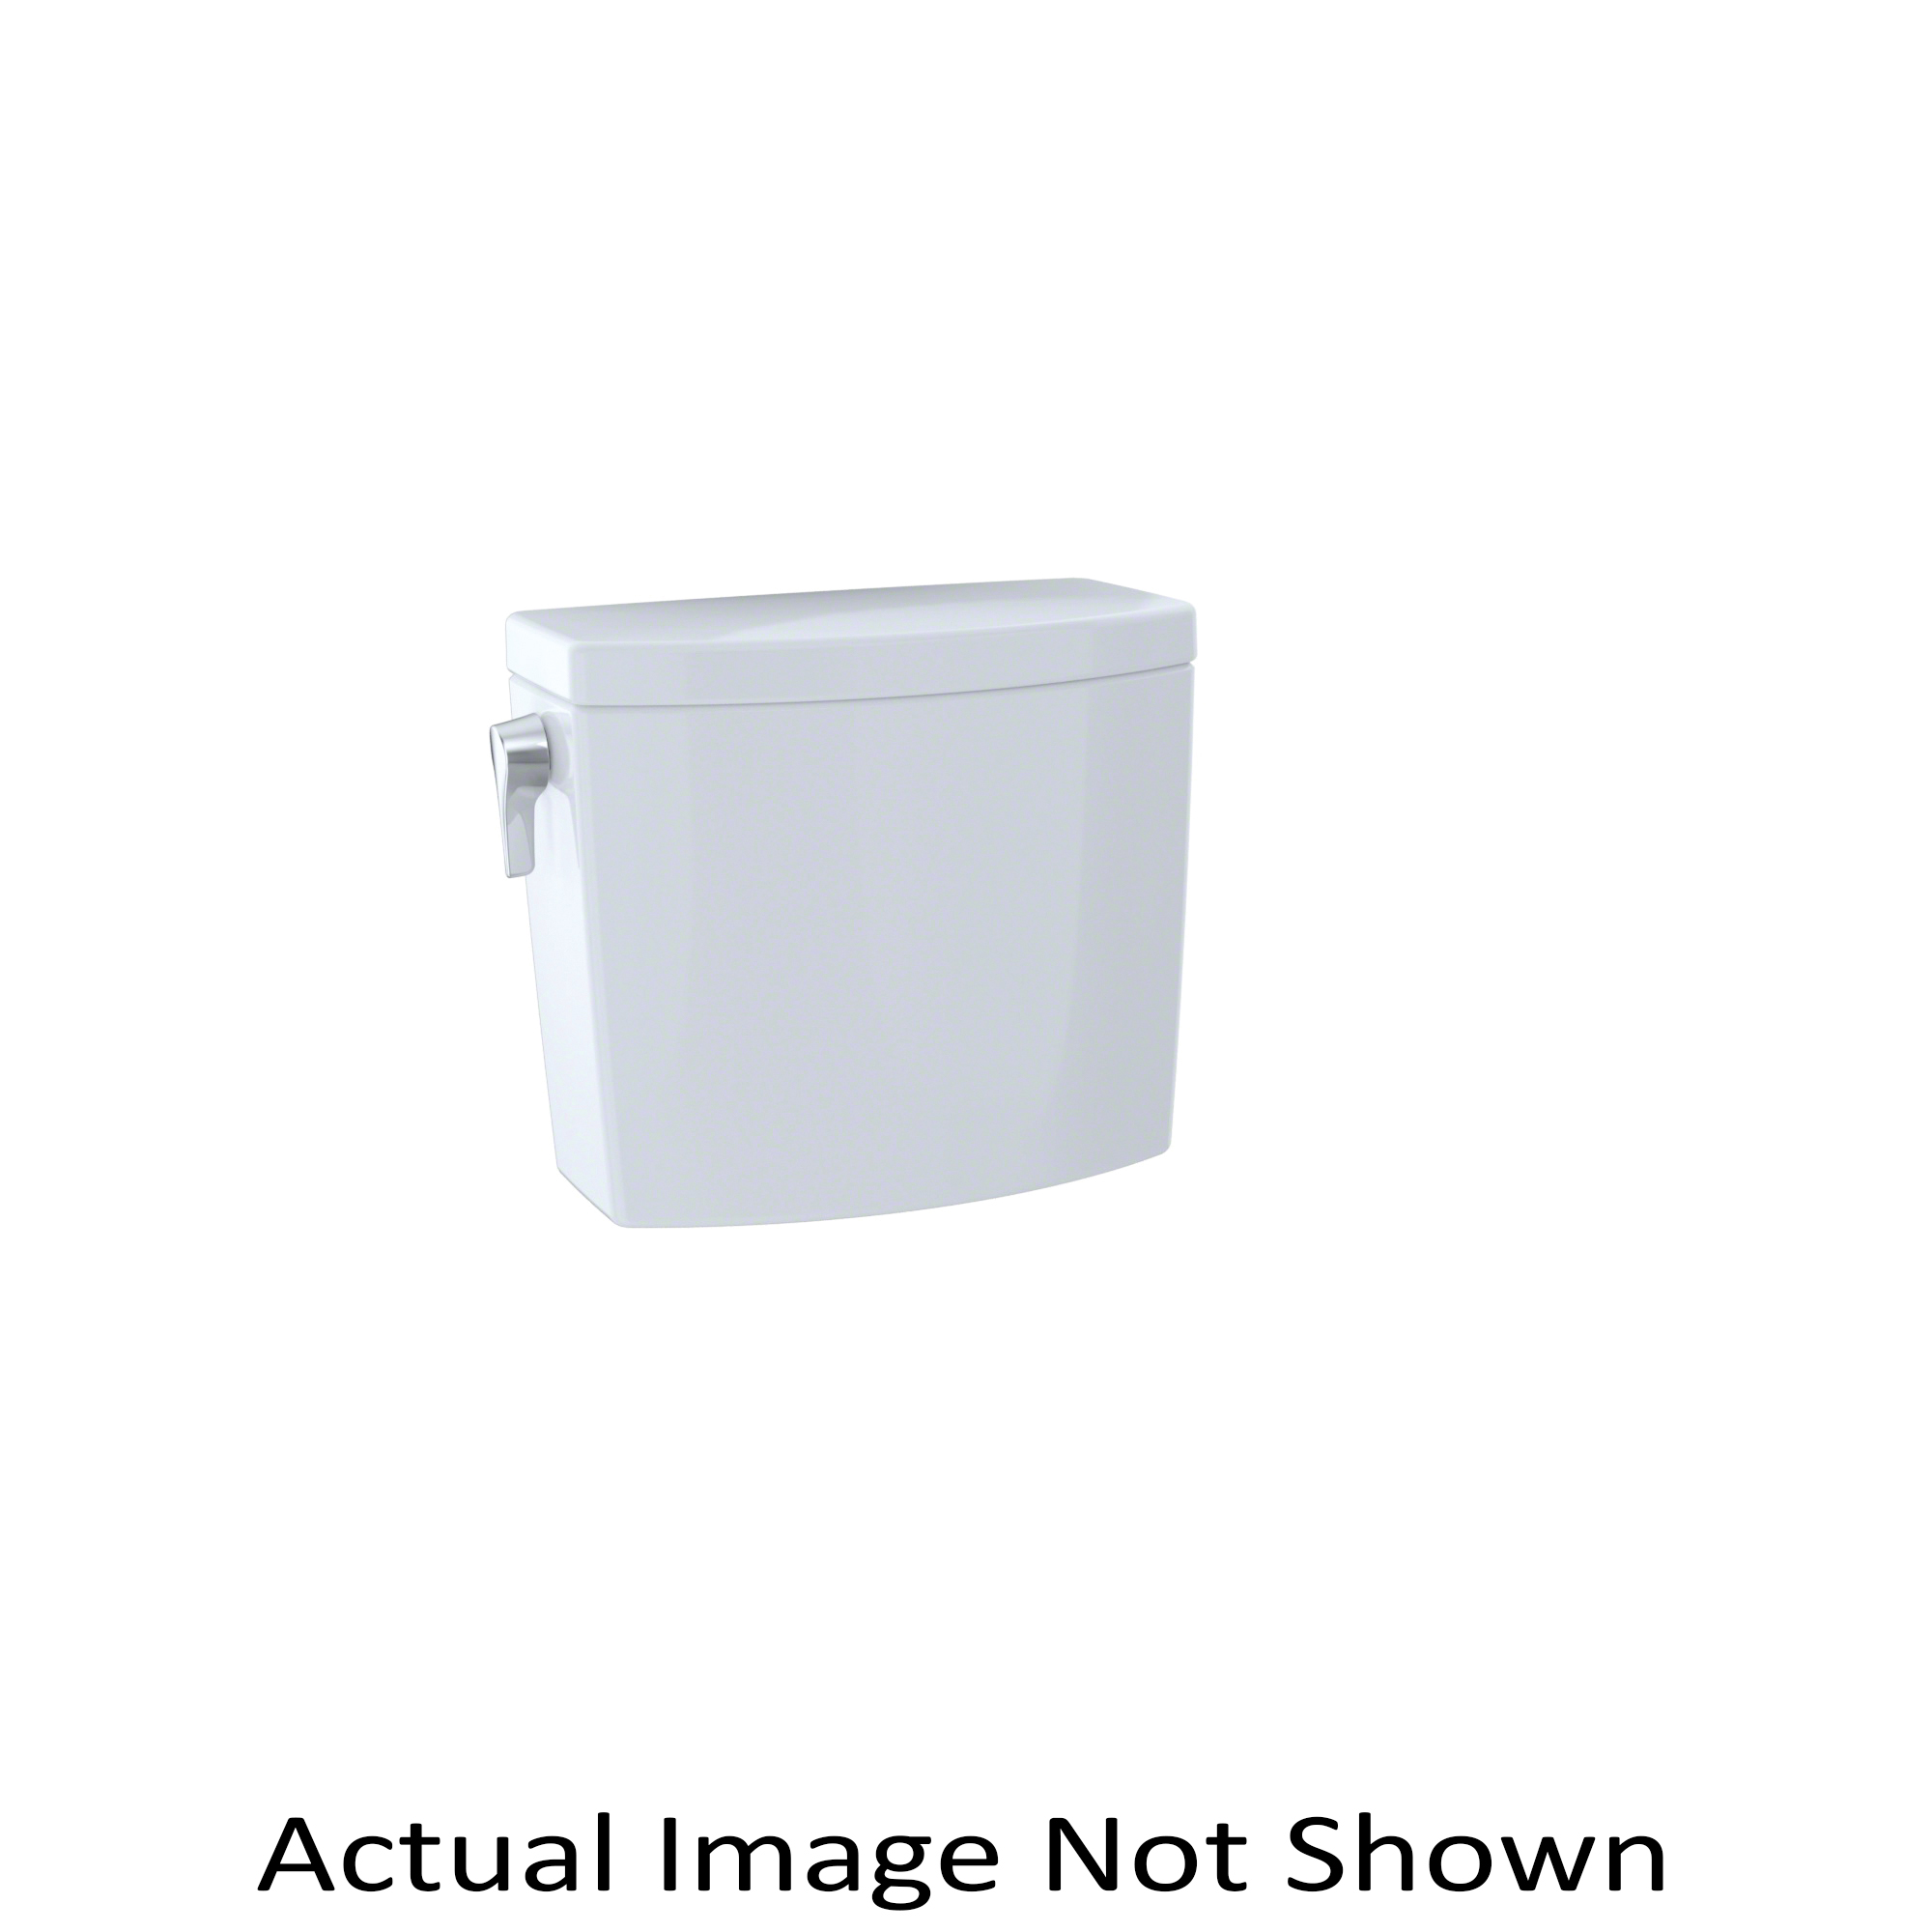 Toto® ST453U#01 Tank and Cover With Trim, 1 gpf, Left Hand Lever Flush Handle, 3 in Flush, Cotton, Domestic